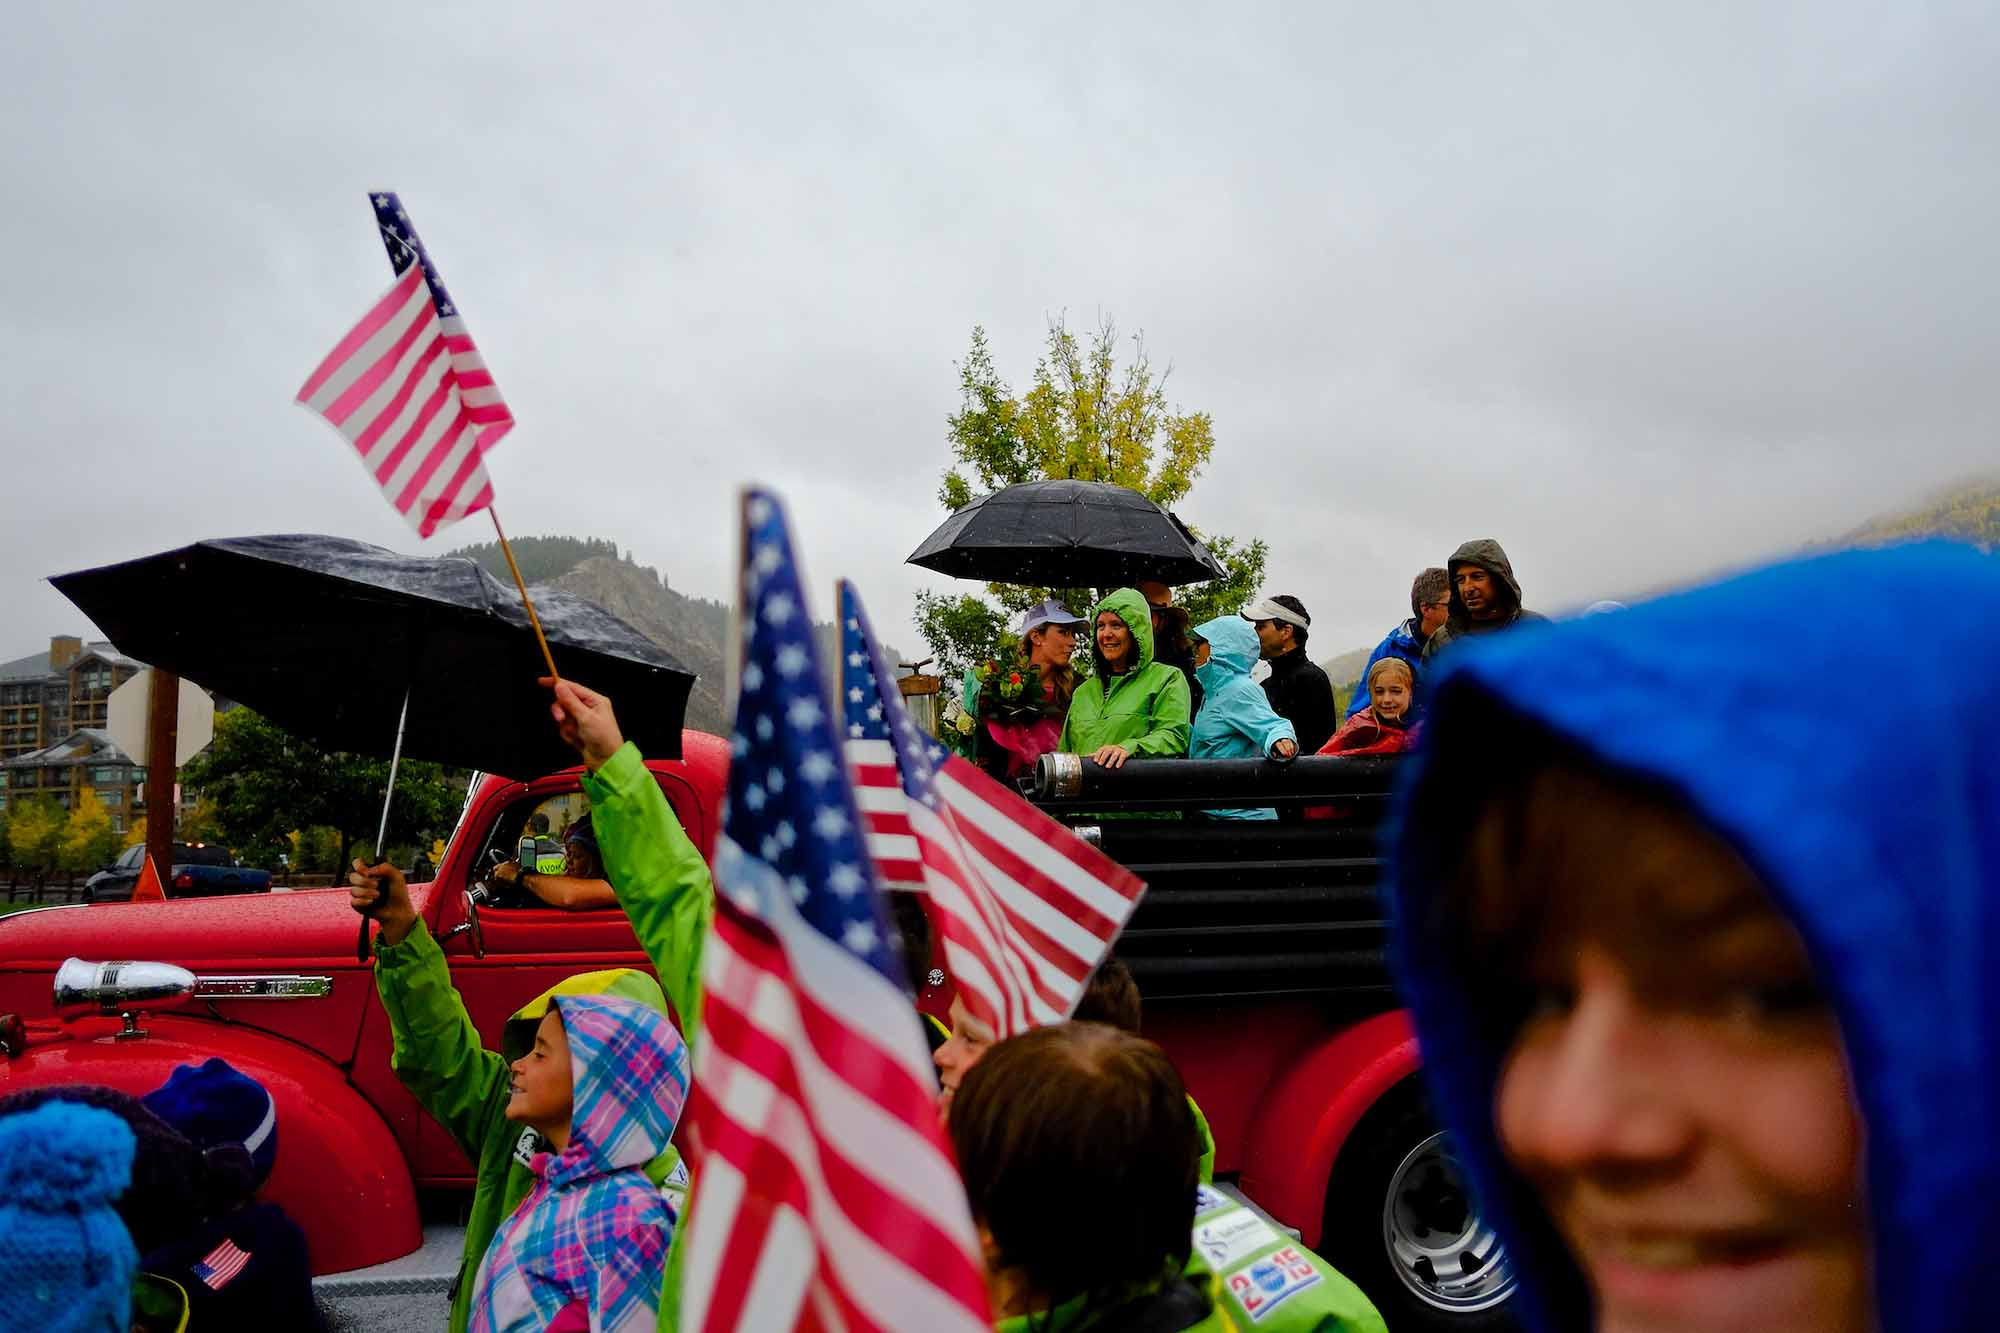 Children of Ski and Snowboard Club Vail raise flags and umbrellas as they march along Mikaela Way in Avon, Colo. on Monday, Sept. 29, 2014. Olympic gold medalist Mikaeala Shiffrin, in a white hat beneath an umbrella, followed in an antique firetruck.